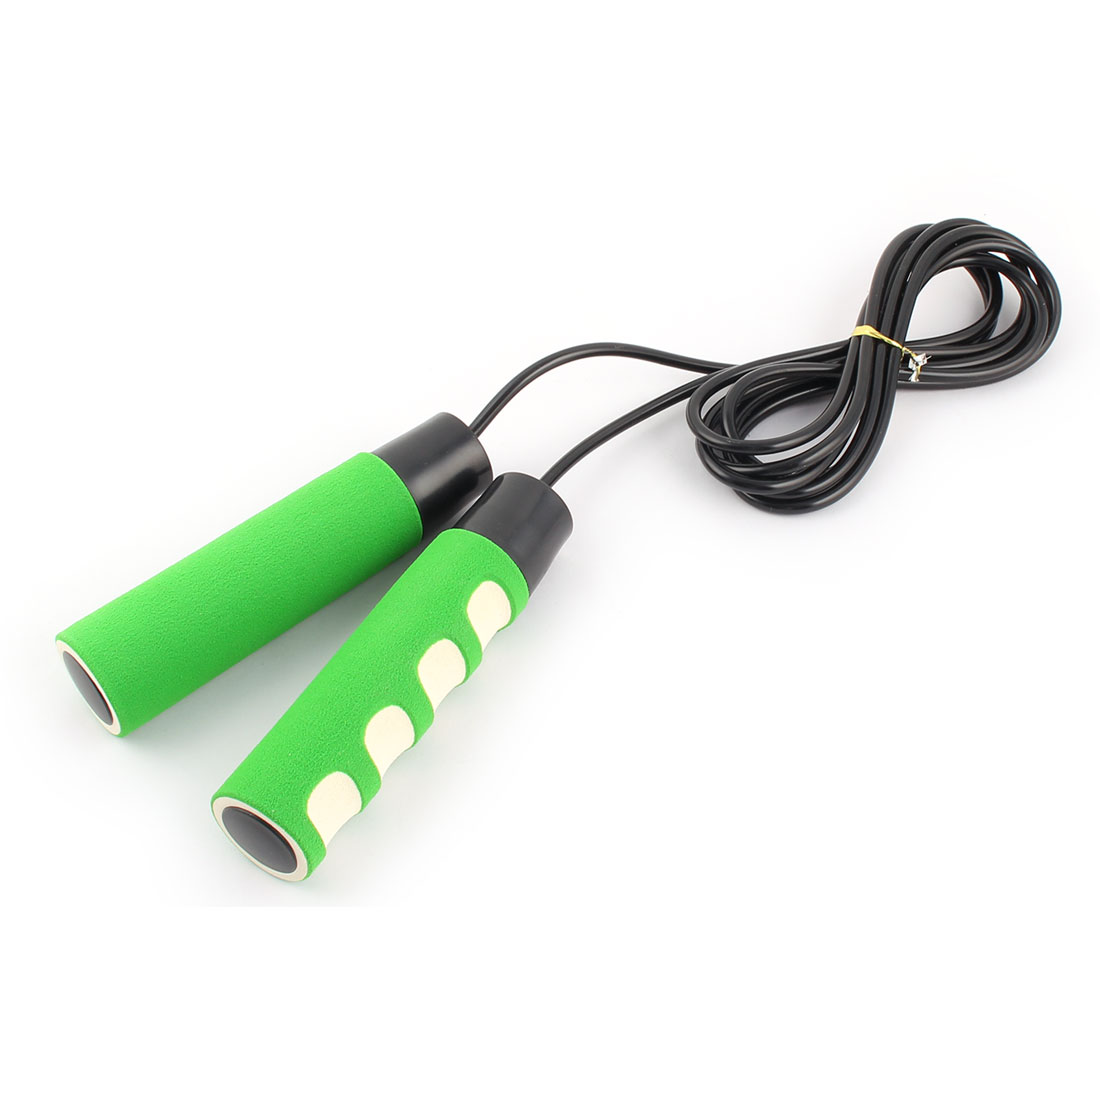 Sports Keep Fit Exercise Easy Grip Portable Skipping Jump Rope 280cm Length